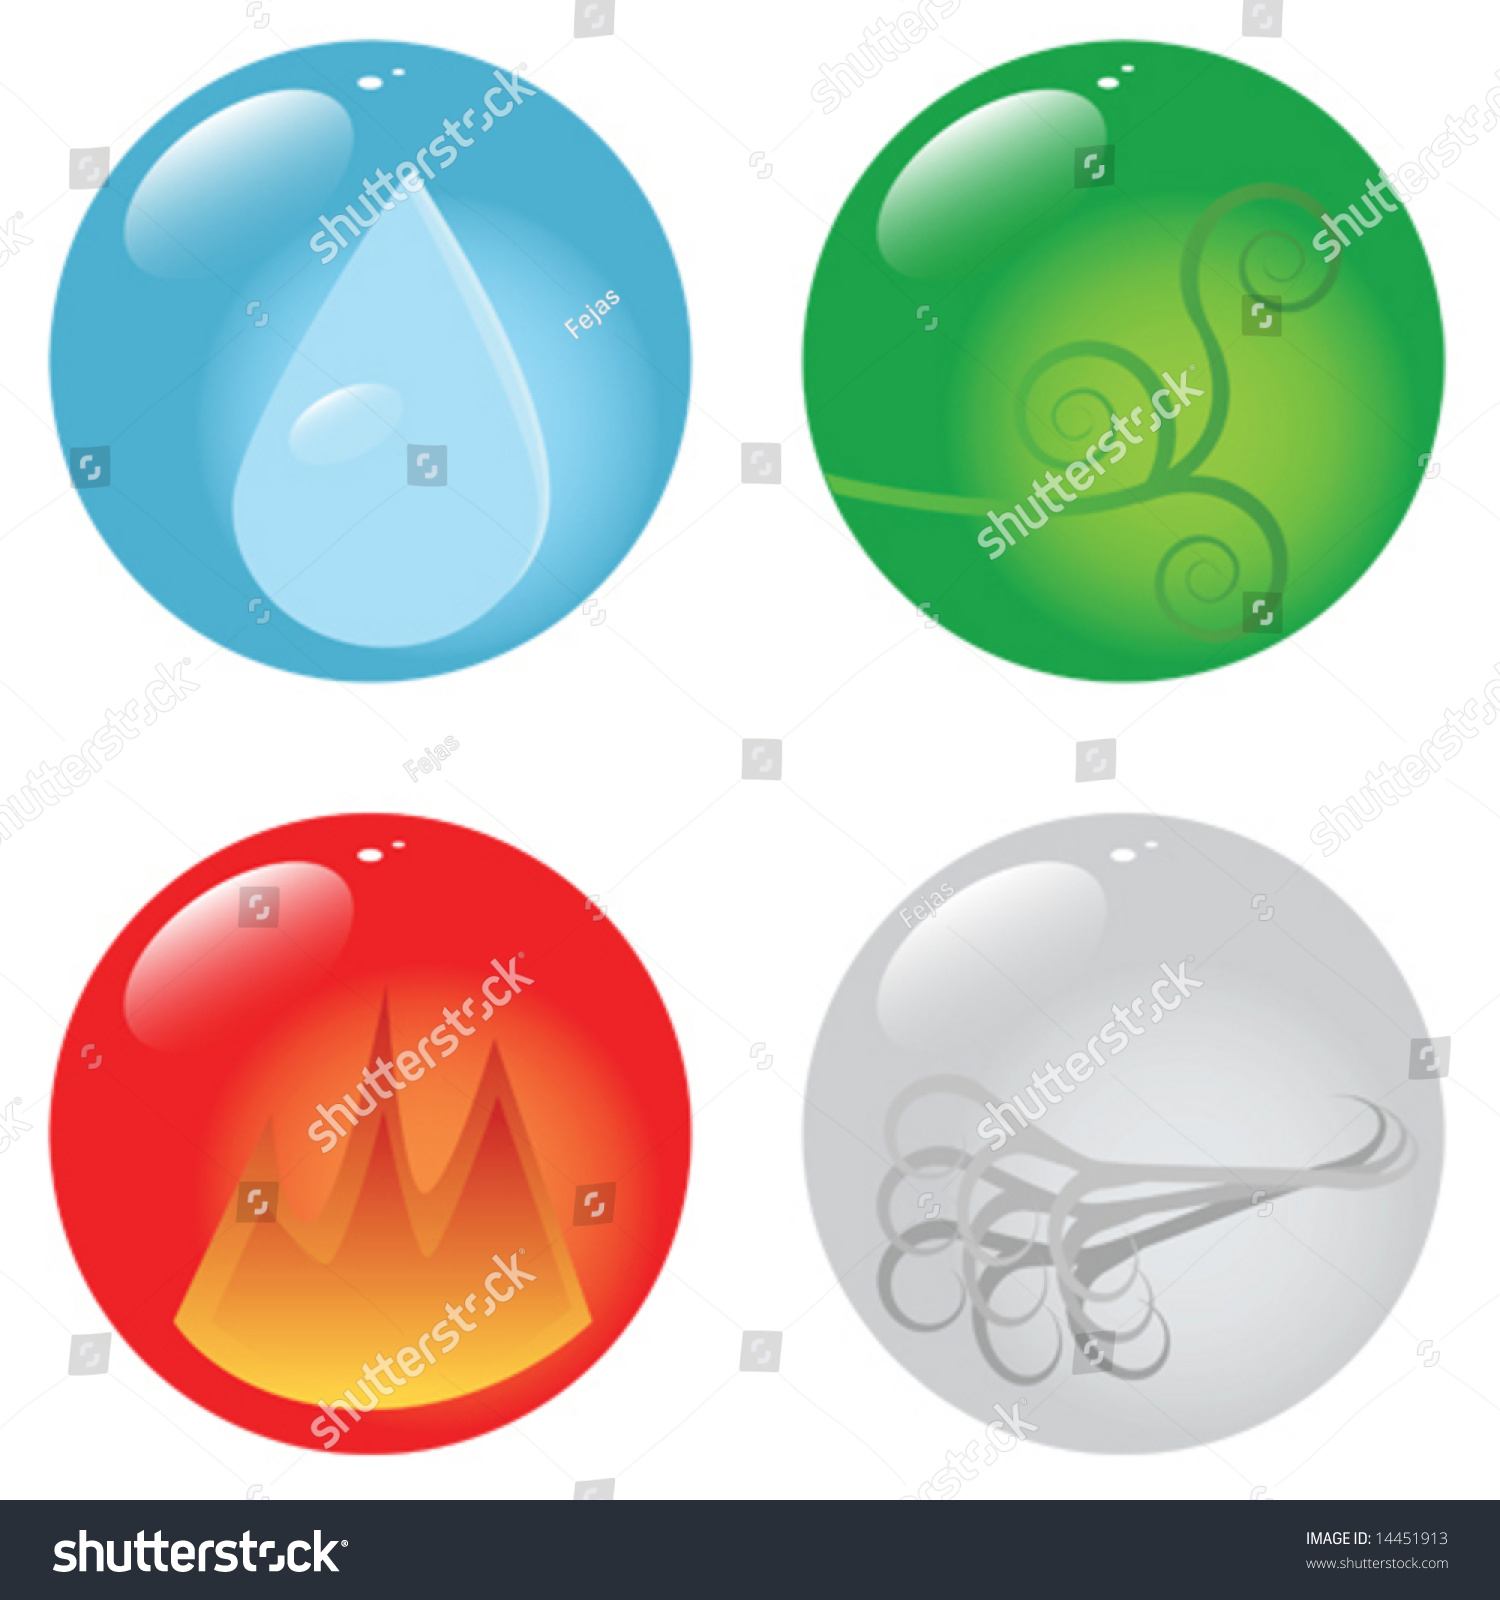 Vector Illustration Spheres Showing Four Basic Stock